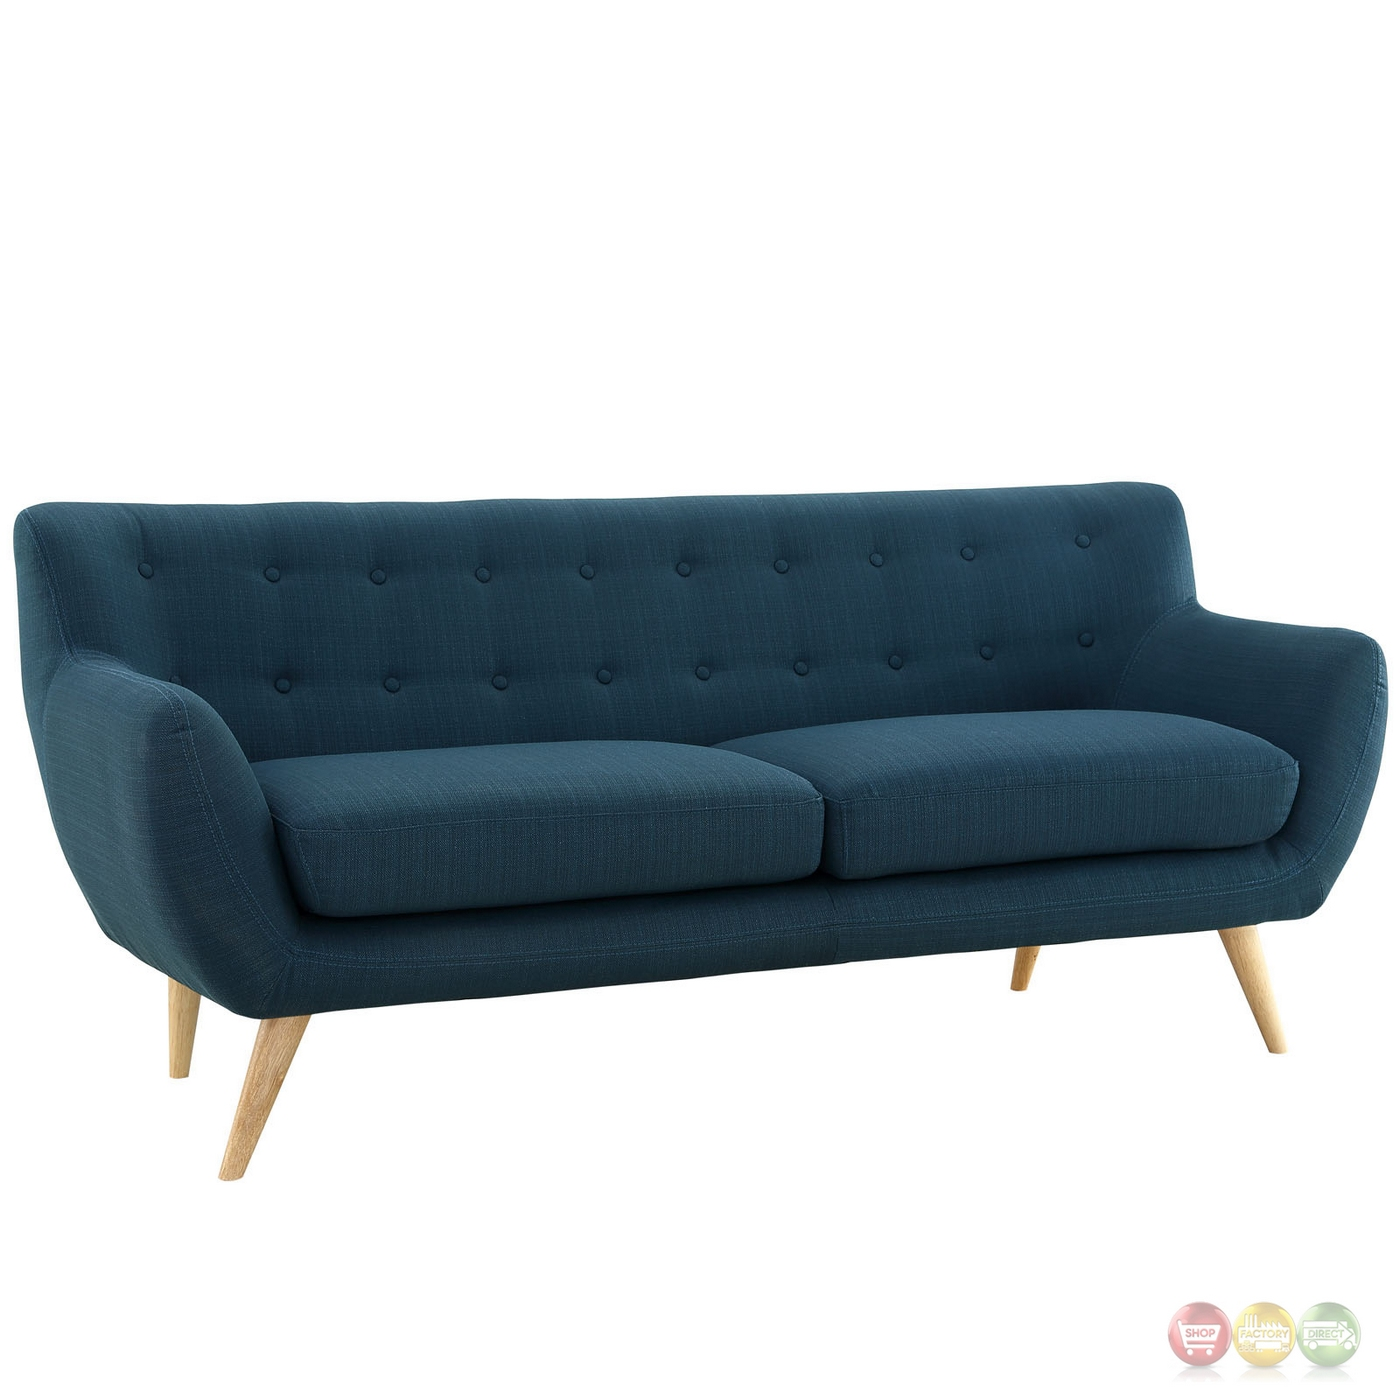 Modern Couch Remark Modern Upholstered Sofa With Button Accents Azure